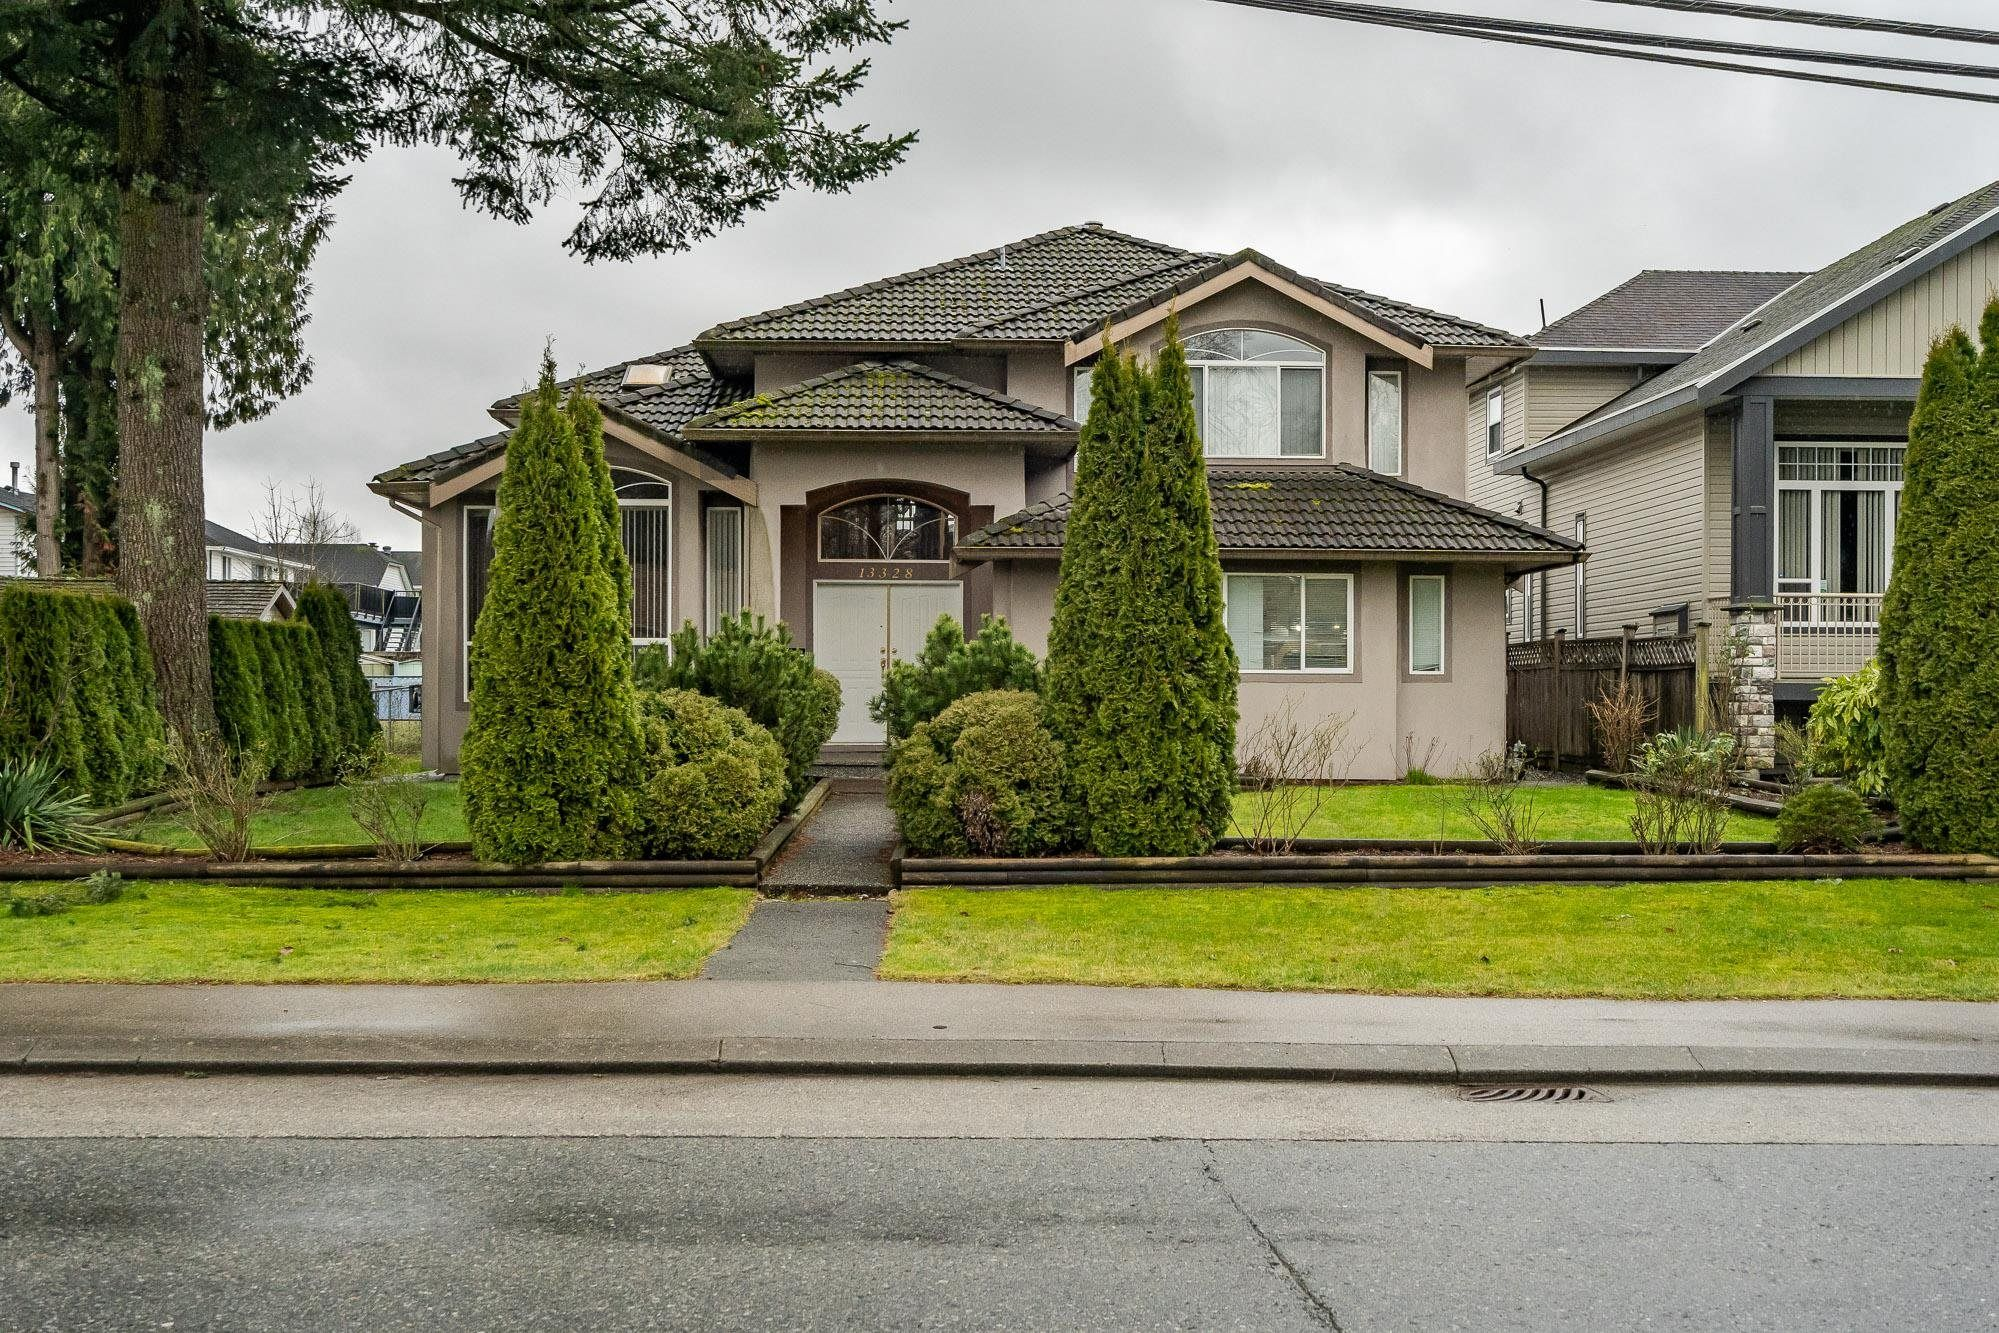 Main Photo: 13328 84 Avenue in Surrey: Queen Mary Park Surrey House for sale : MLS®# R2625531